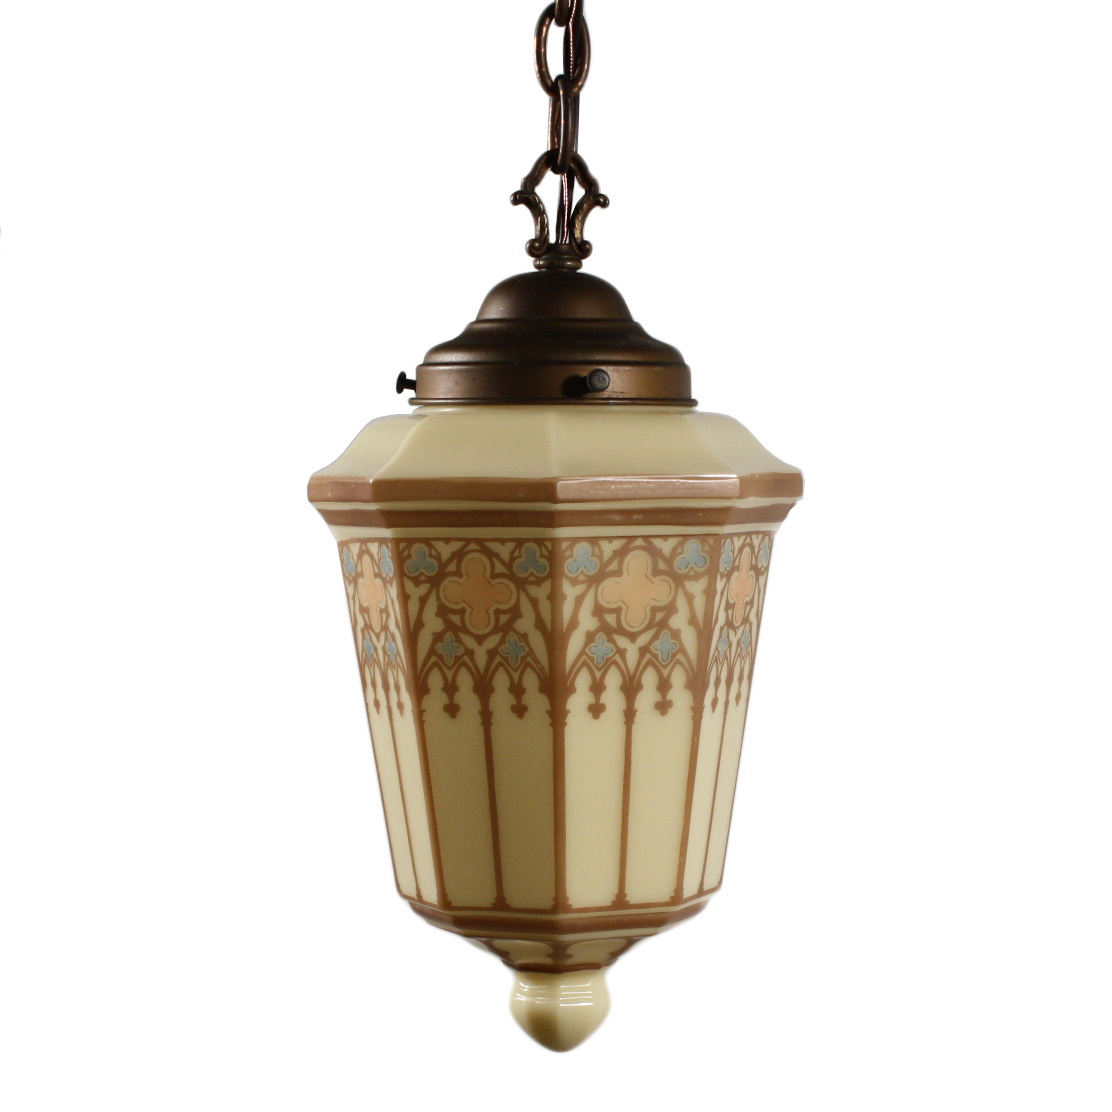 Antique gothic revival furniture for sale - Delightful Antique Gothic Revival Pendant Light Early 1900s Nc1559 Rw For Sale